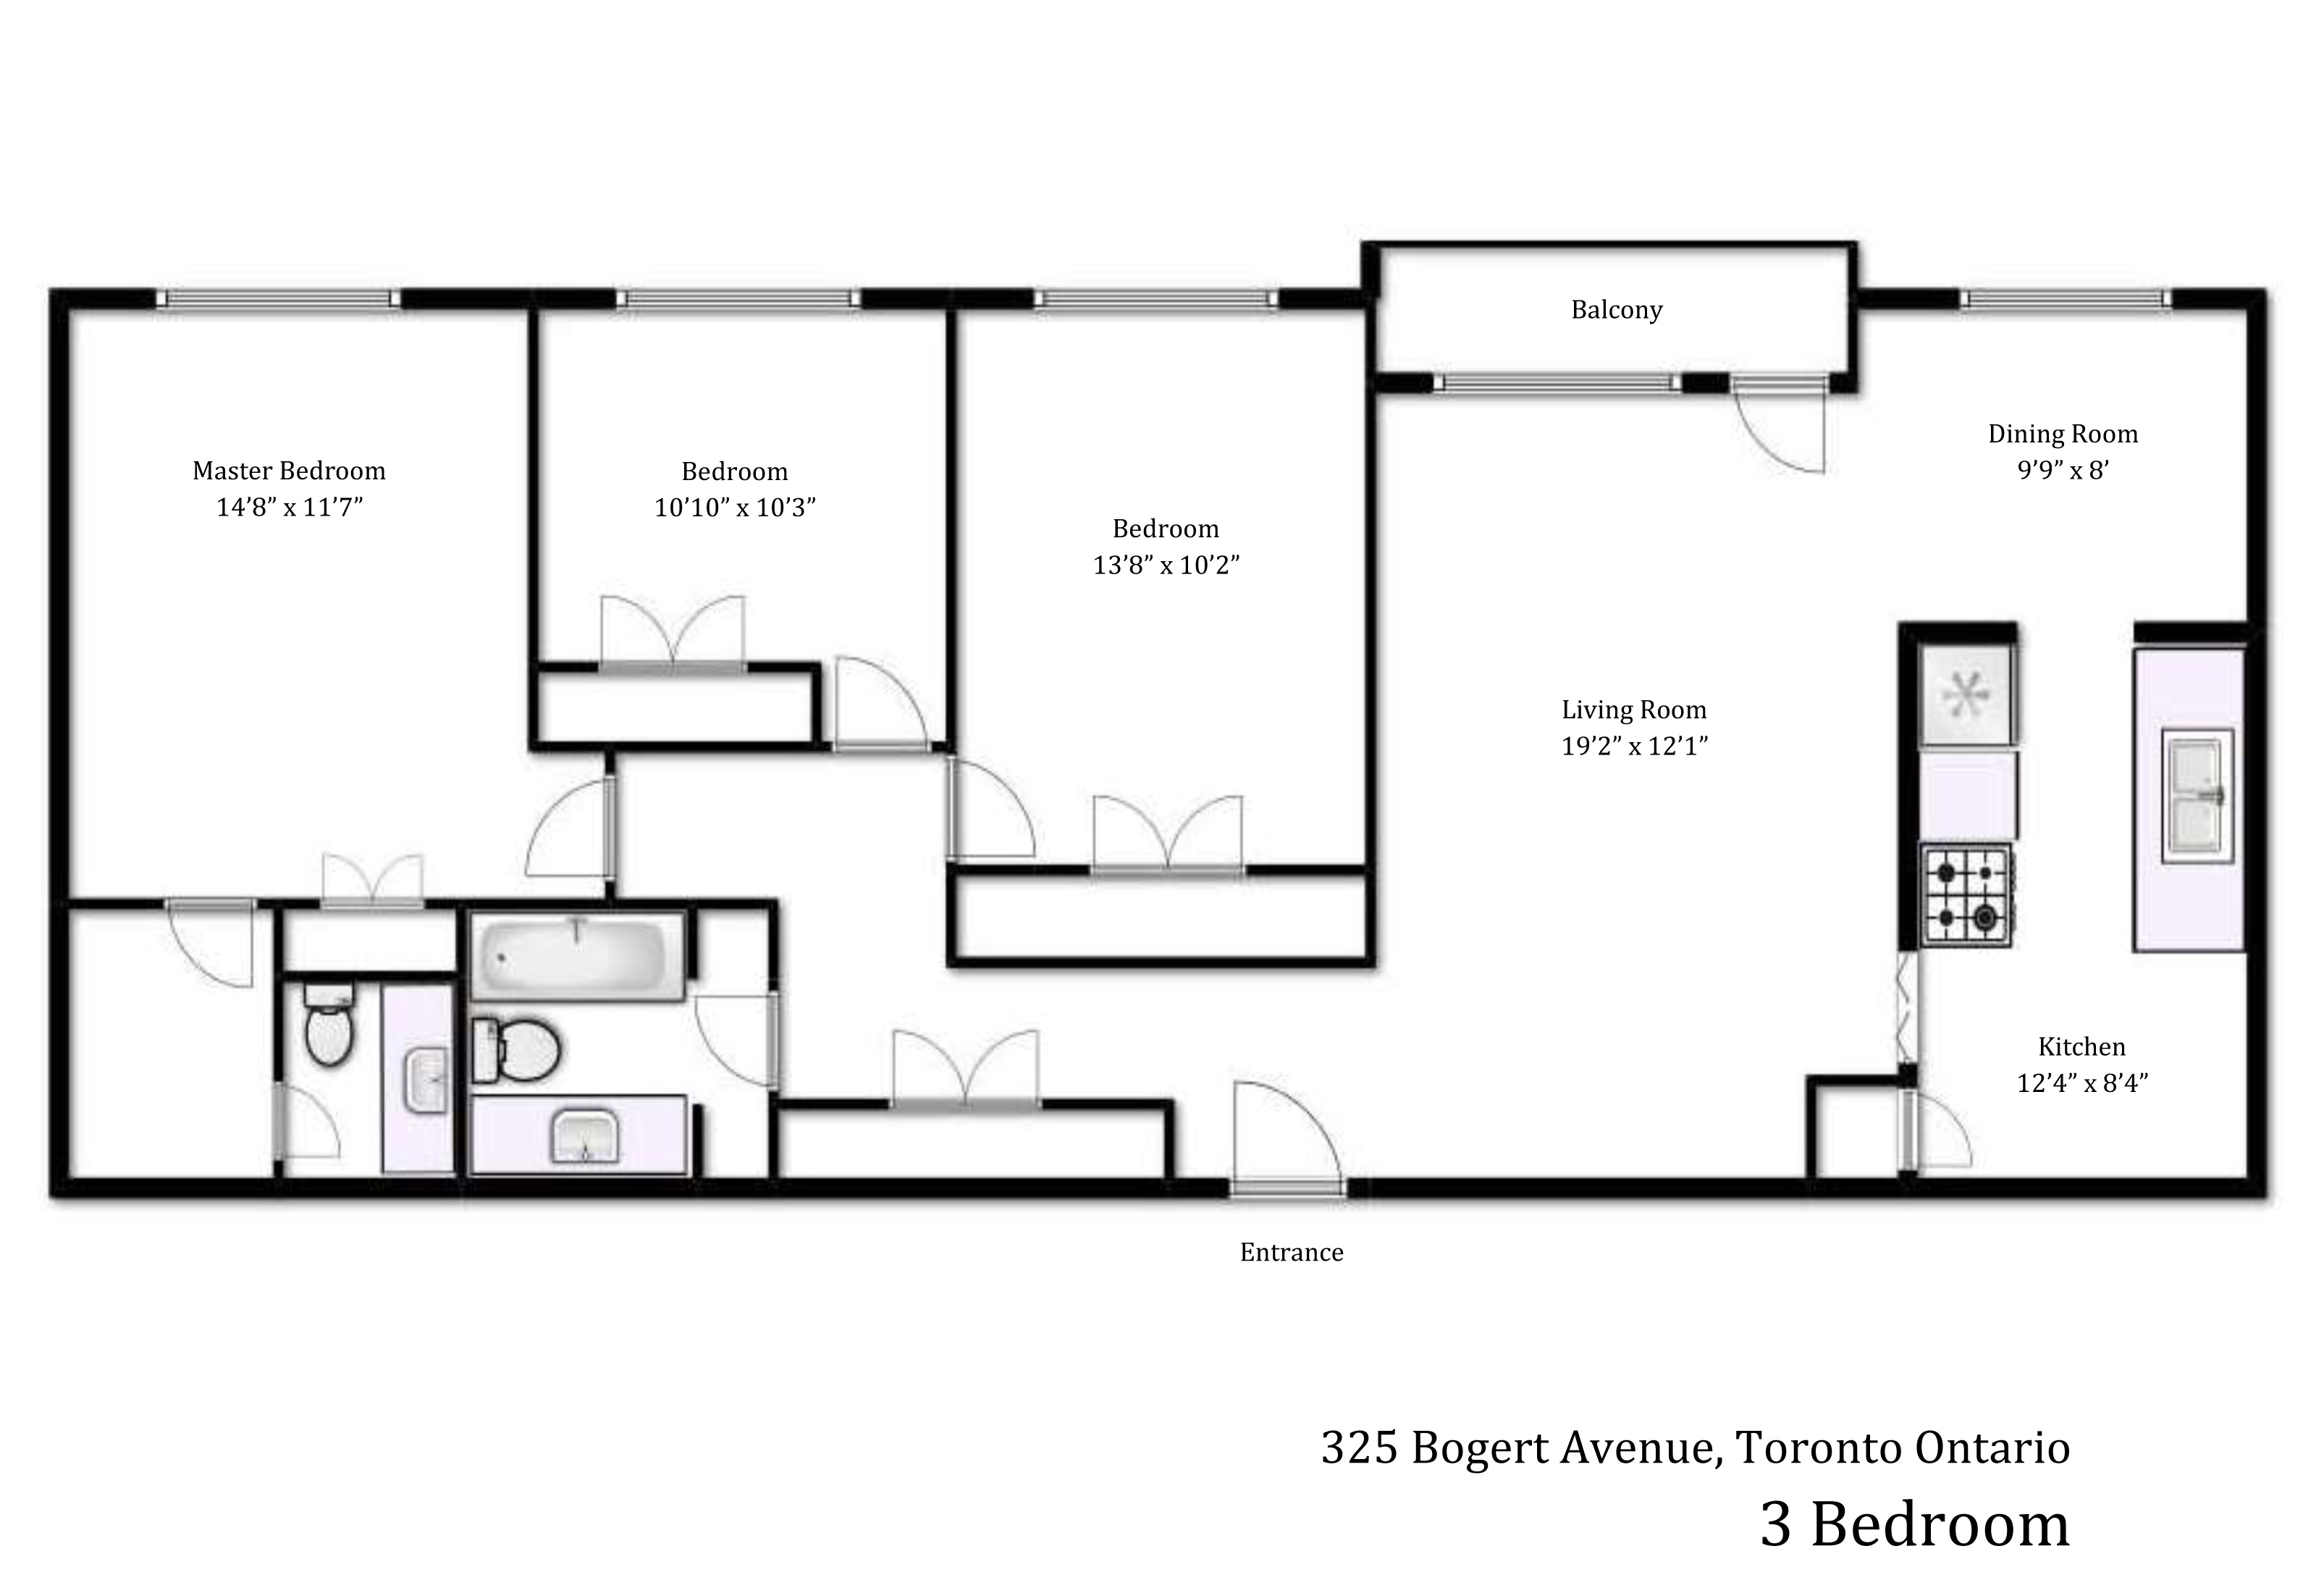 avenue 3 bedroom floor plan 325 bogert avenue 2 bedroom floor plan